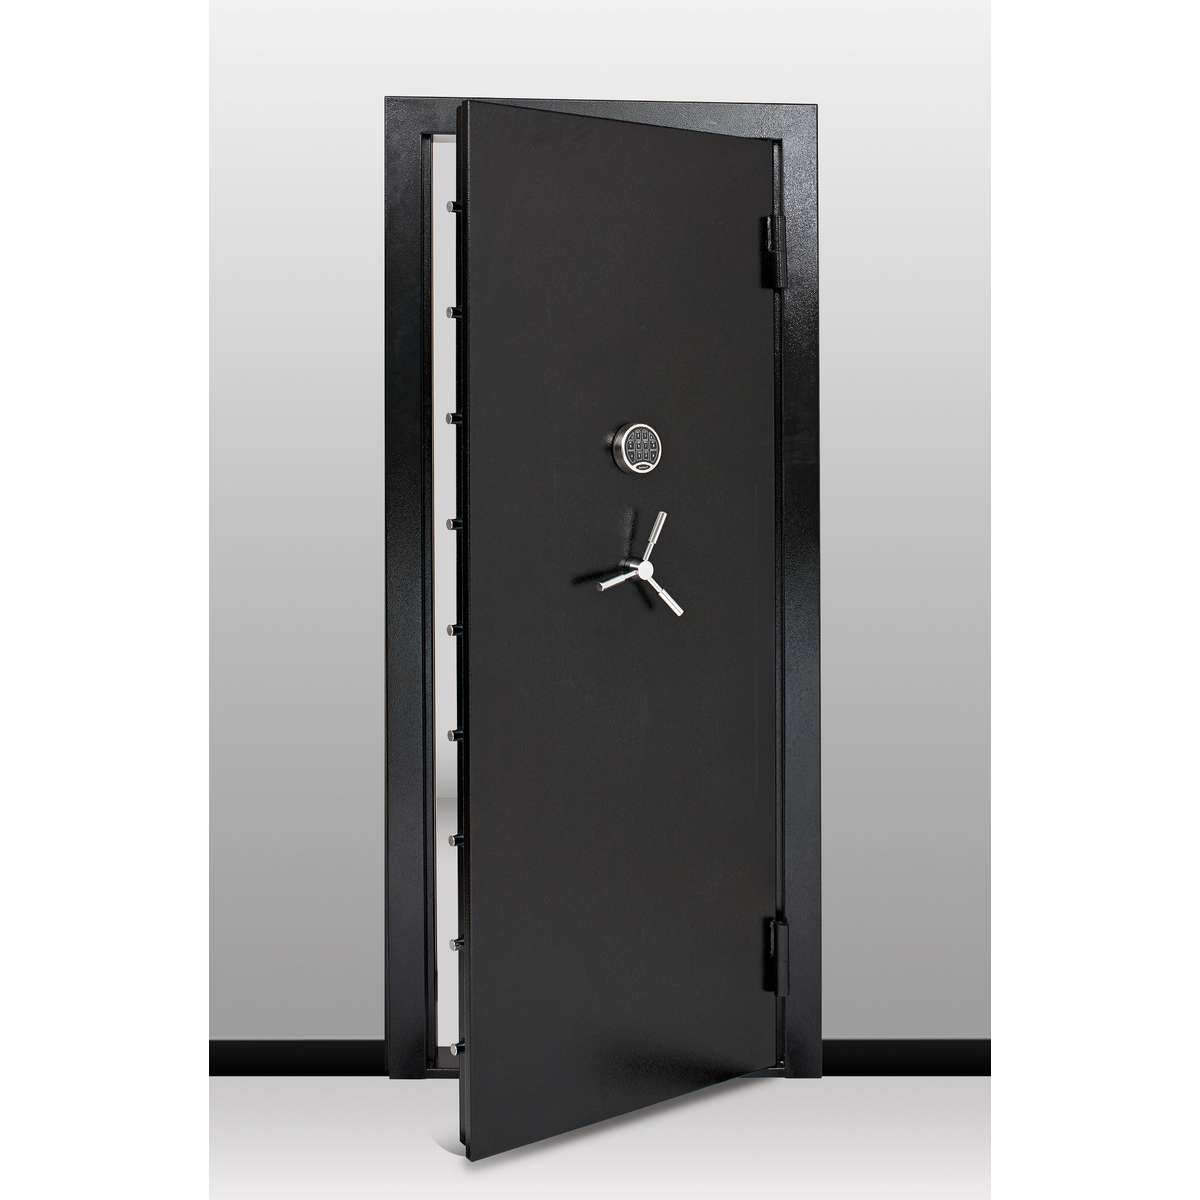 "Vault Doors For Panic Rooms & Walk-In Safes - SnapSafe 75419 Vault Door (80"" H X 32"" W) - Outswing"